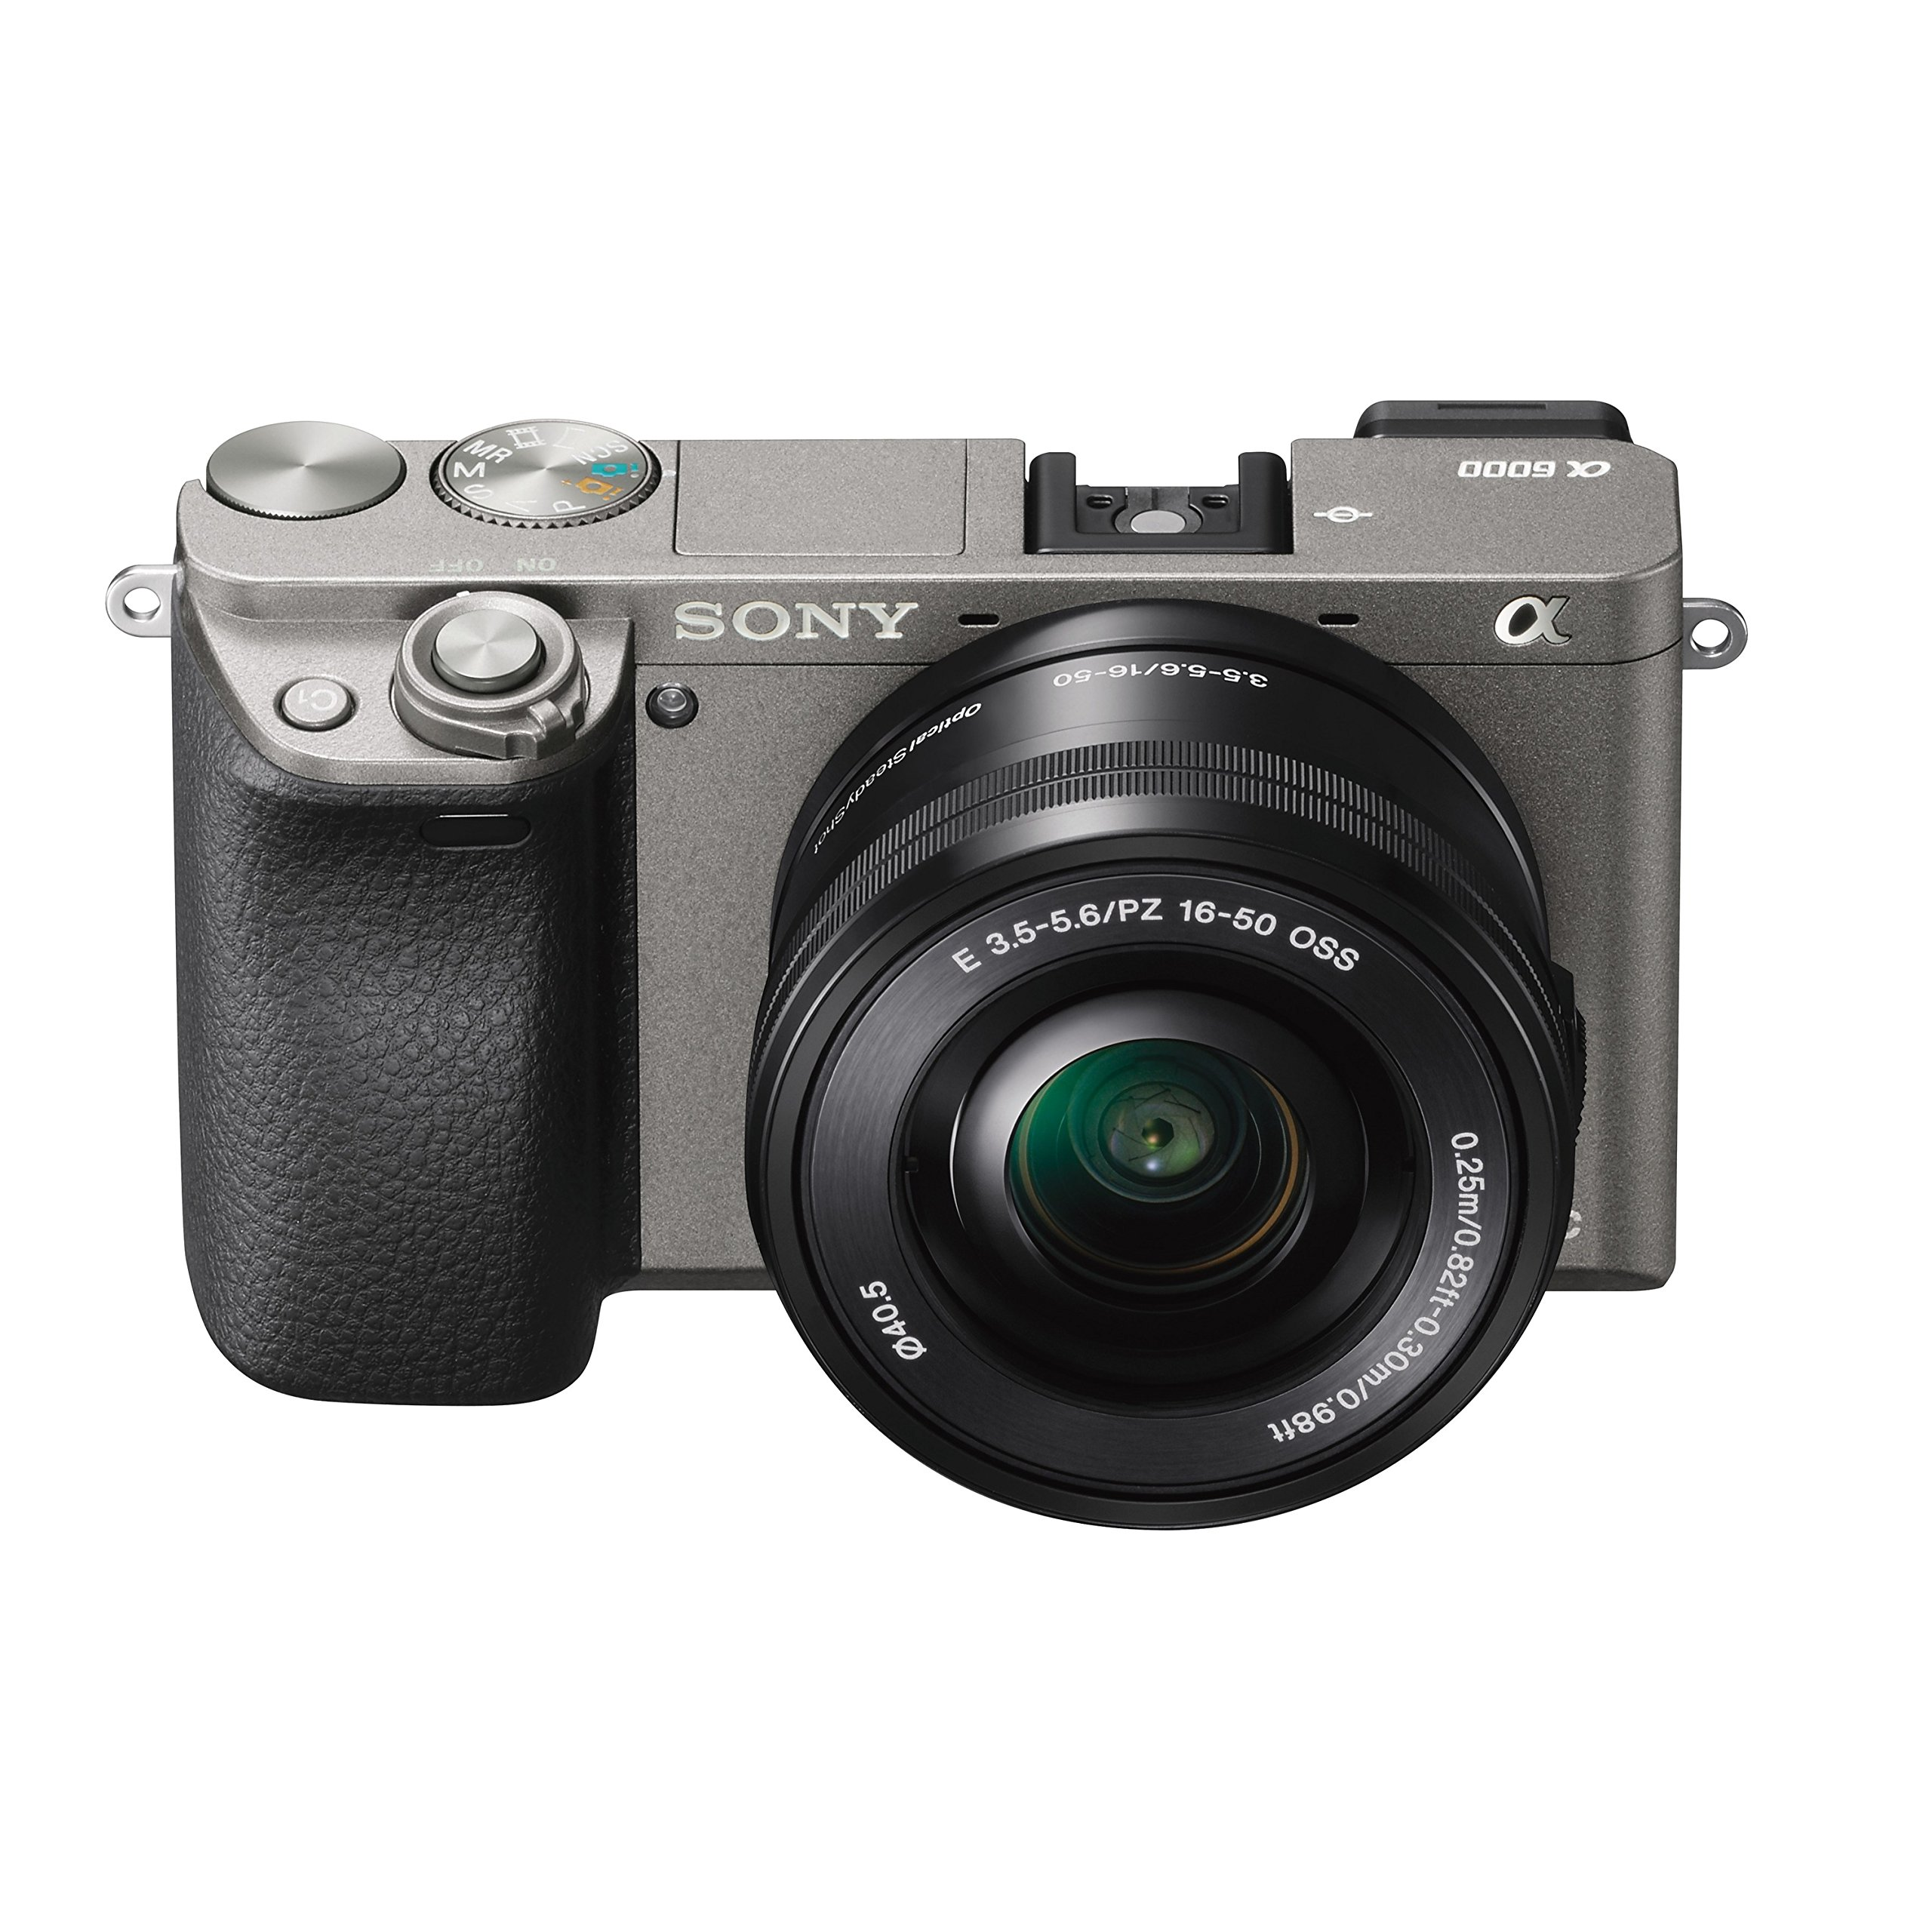 Sony Alpha a6000 Mirrorless Digital Camera with 16-50mm Lens, Graphite (ILCE-6000L/H)